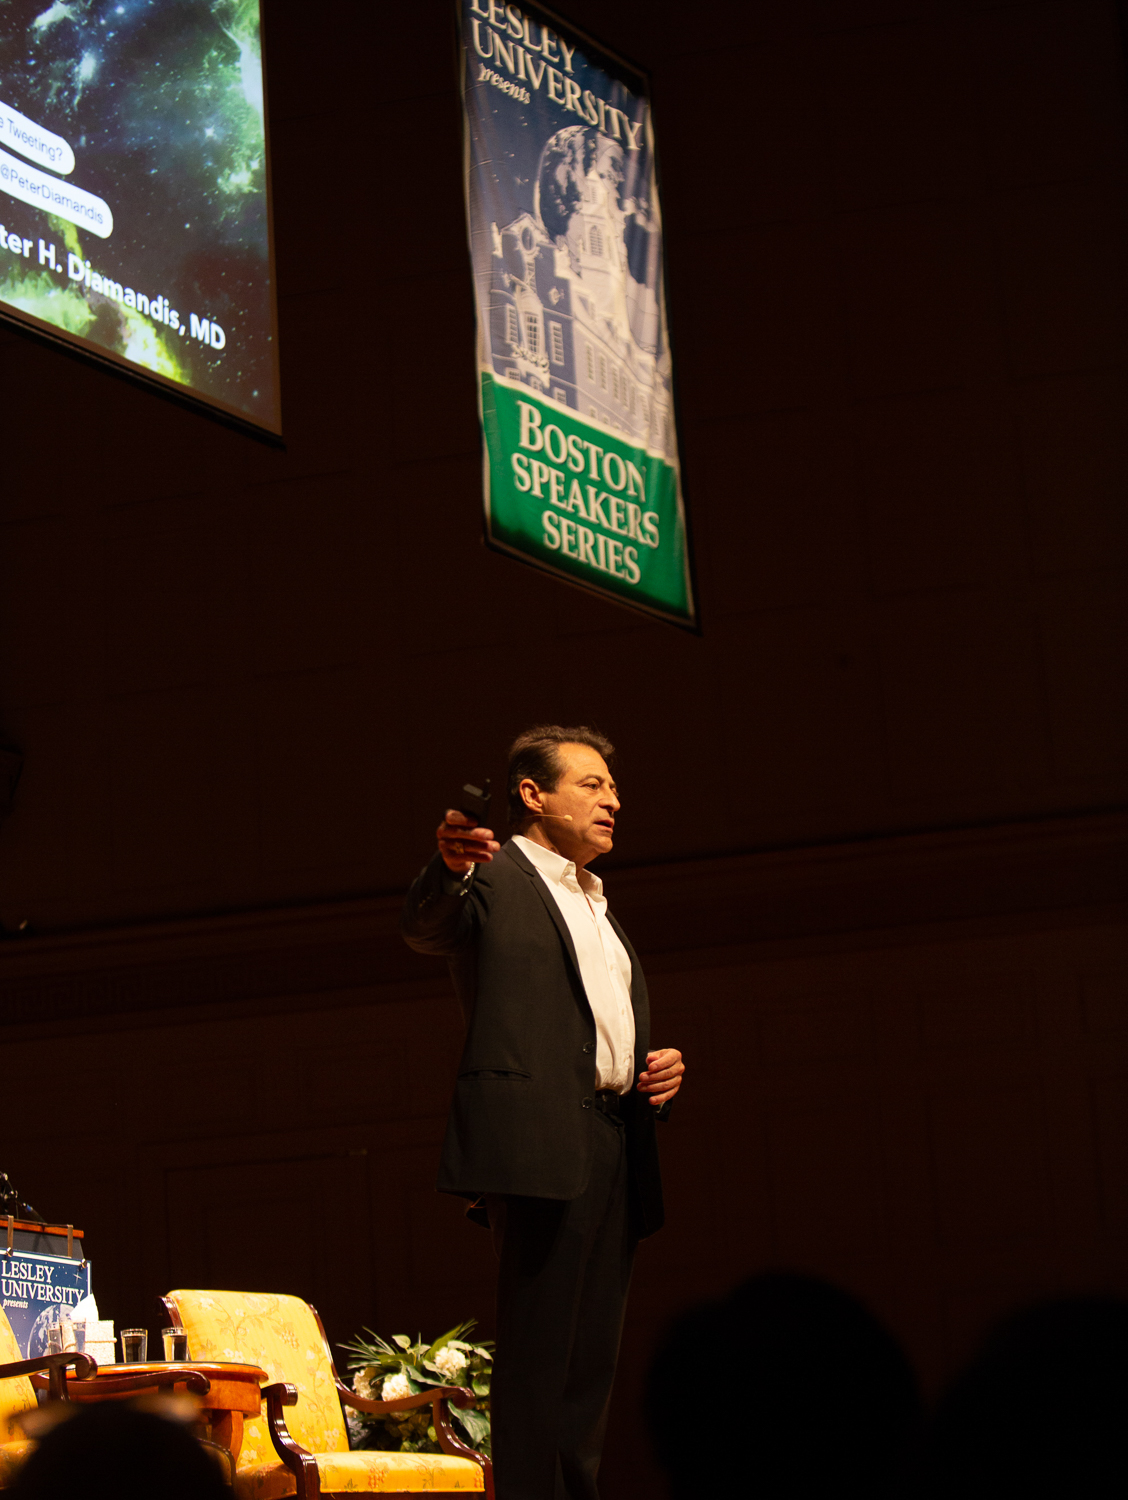 Peter Diamandis speaking on stage